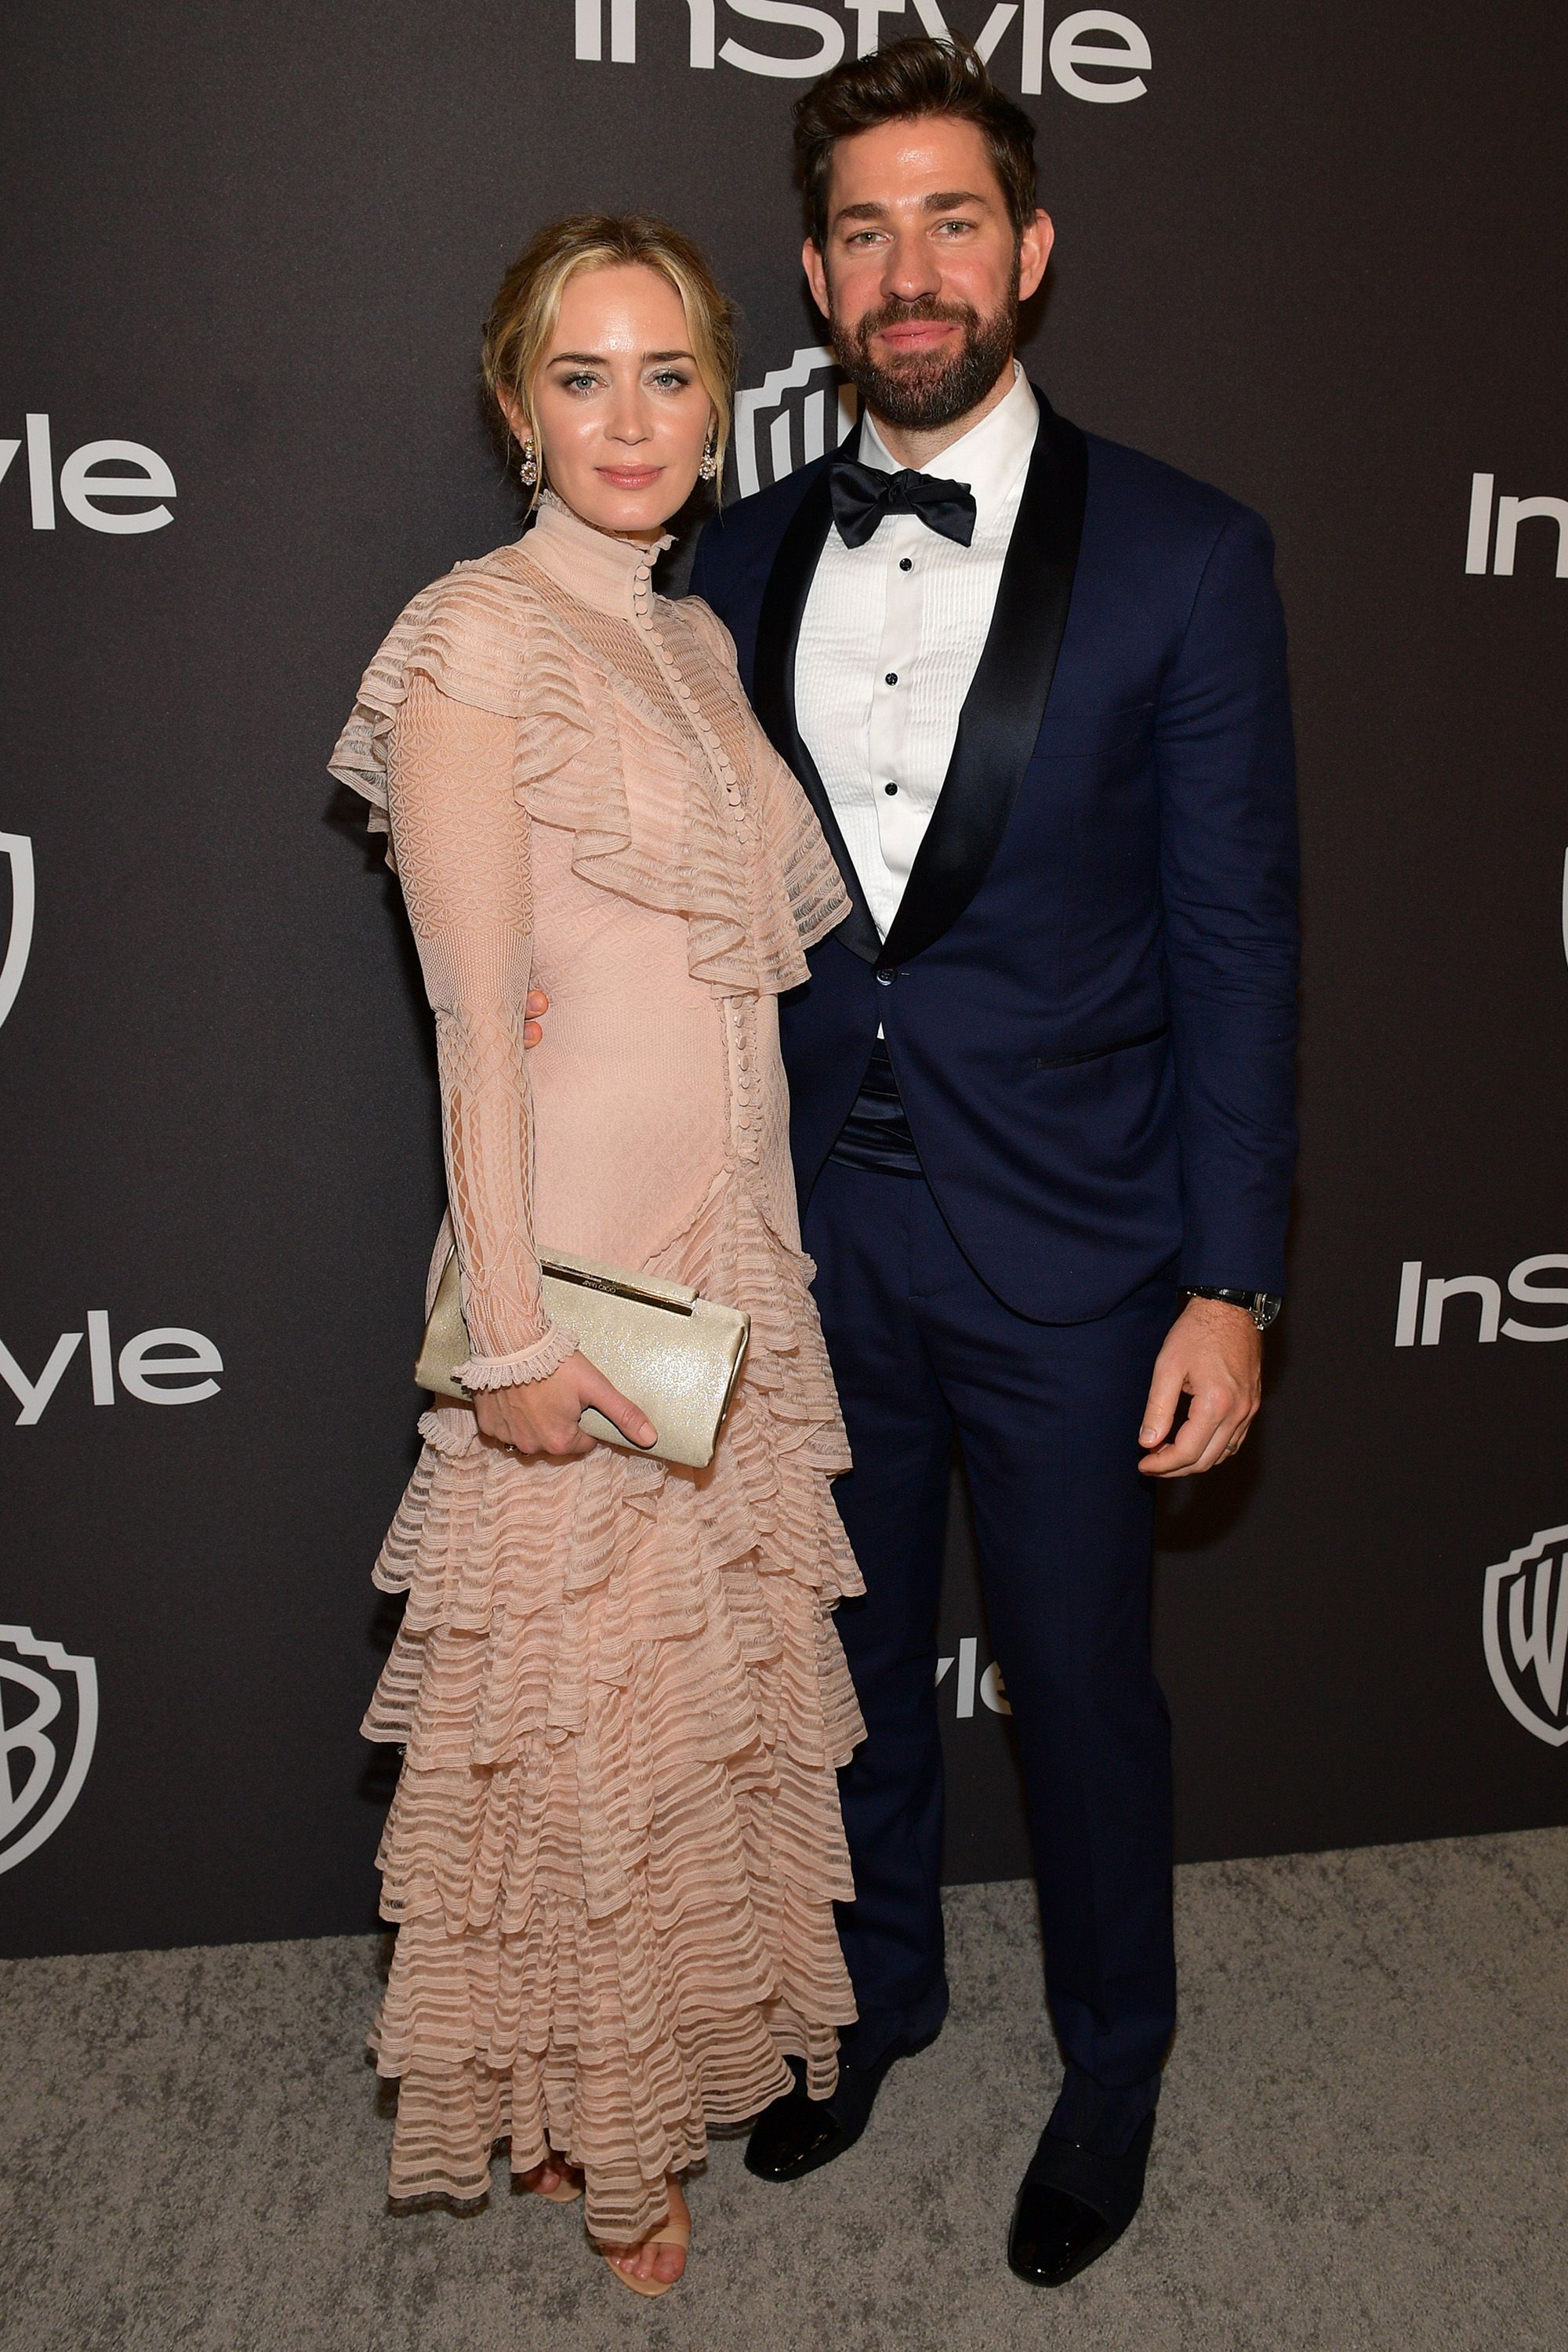 Golden Globe Awards after party 2019